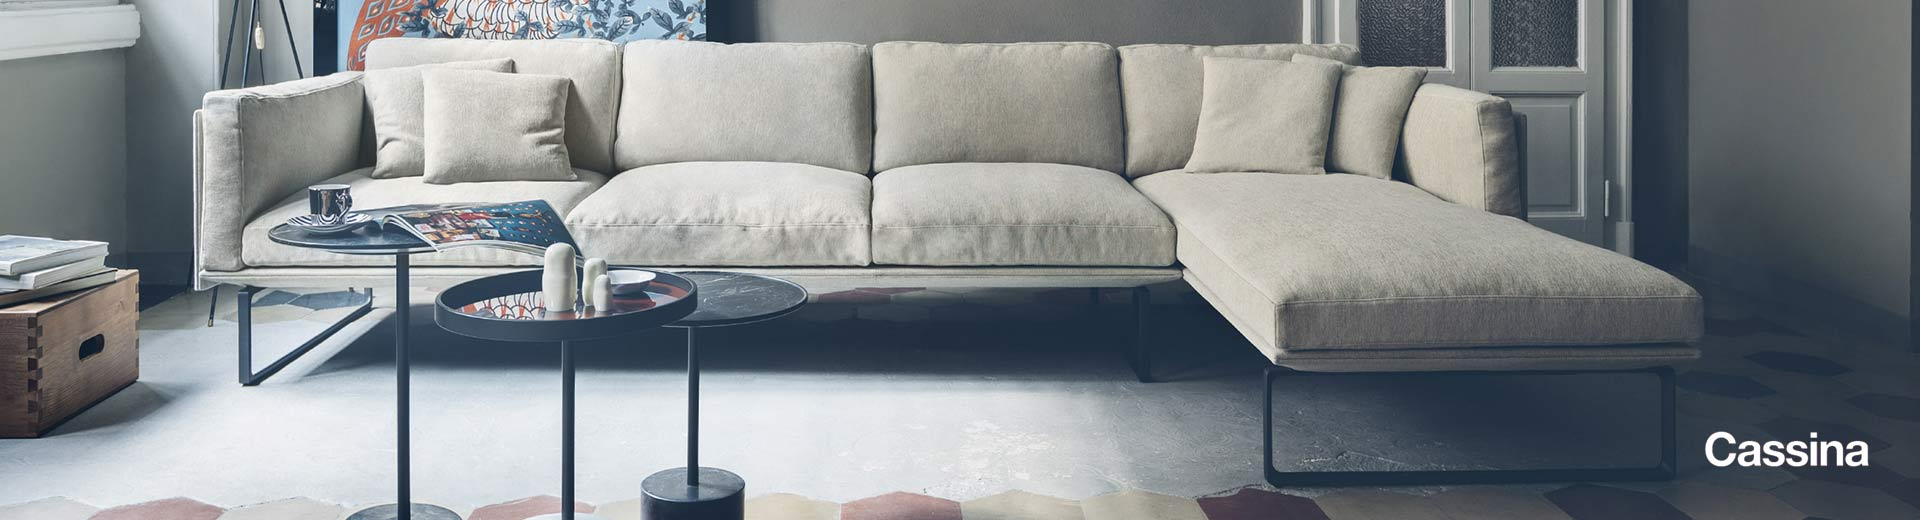 Cassina Mobel Moderne Meisterwerke The Qvest Shop